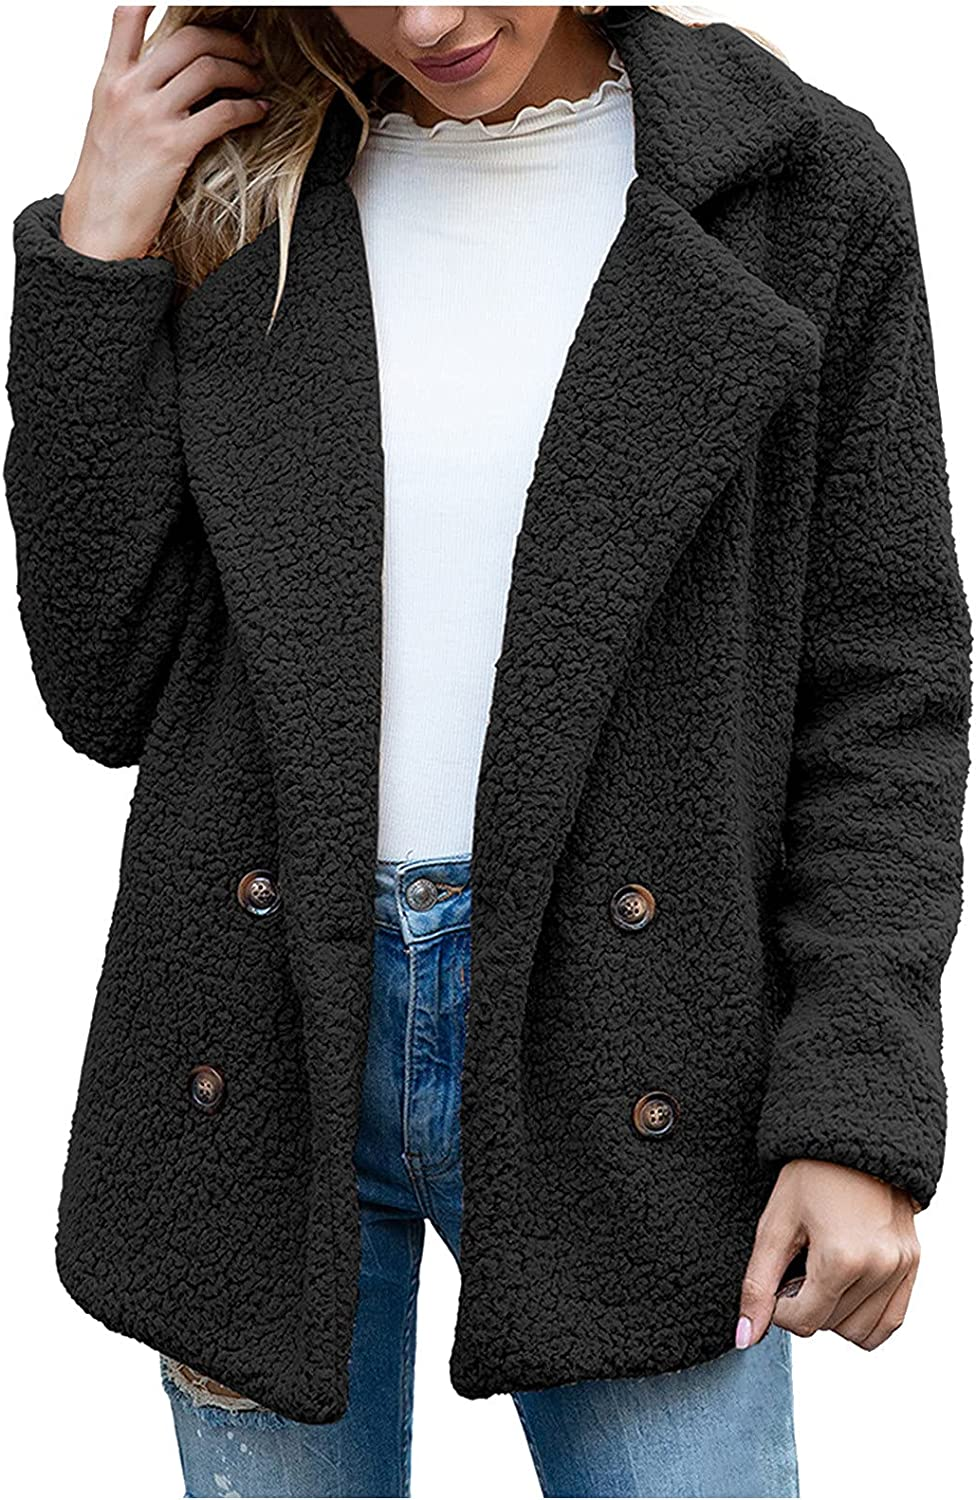 Womens Ladies Many popular brands Warm Jacket Winter Women Solid Max 68% OFF Turn Outerwear Coat